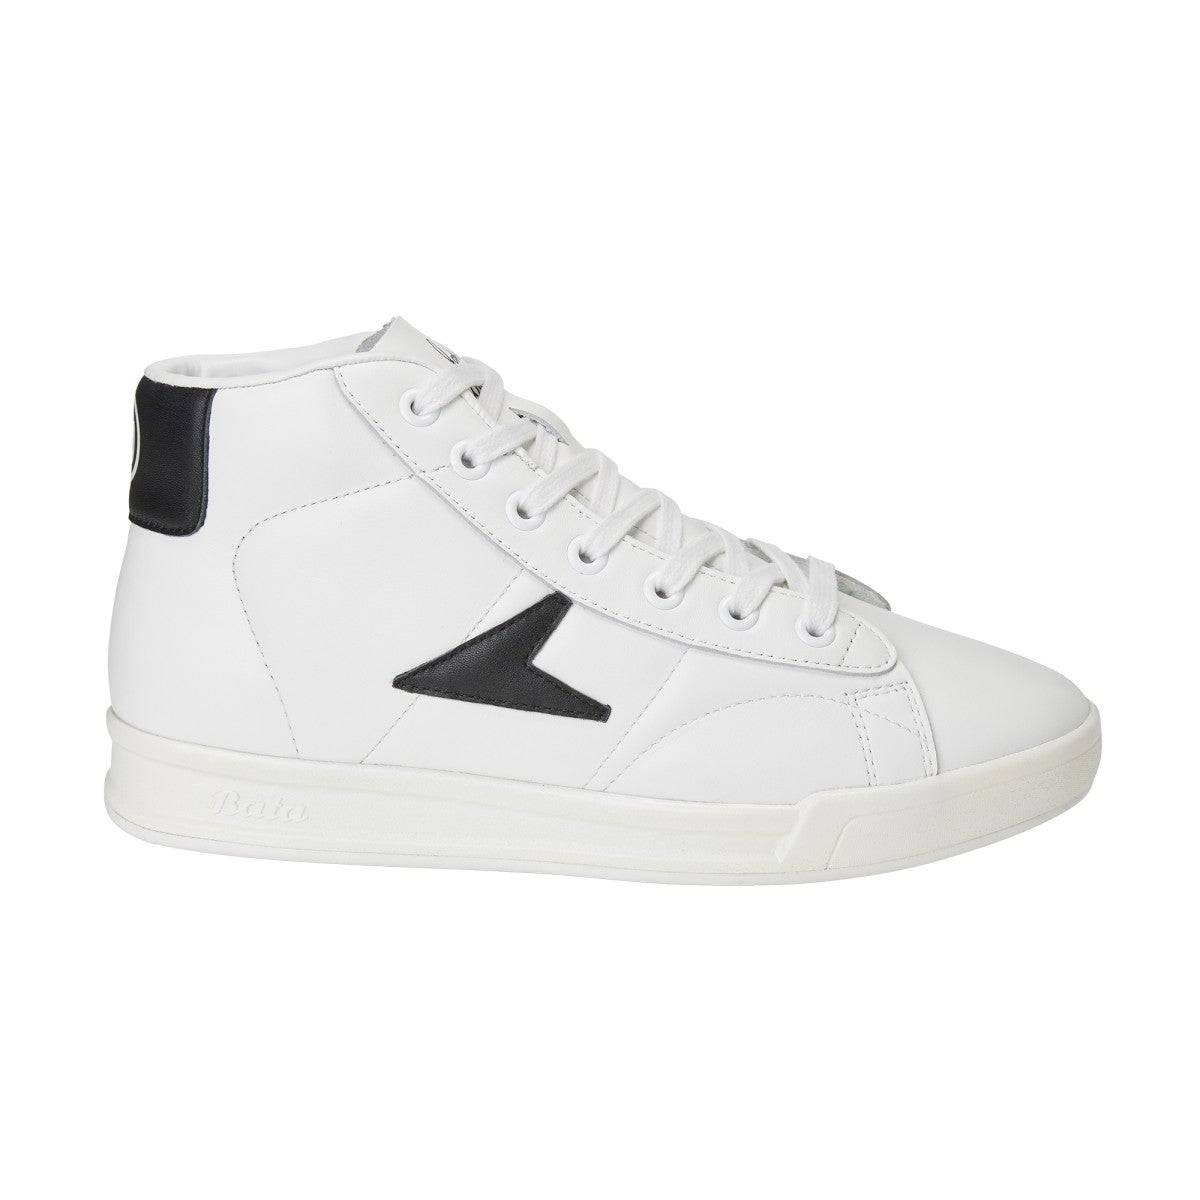 Wilson John Wooden Classic High Top Shoes in White / Black - Size: 4.5 M  - Unisex - White/Black - Size: 4.5 M